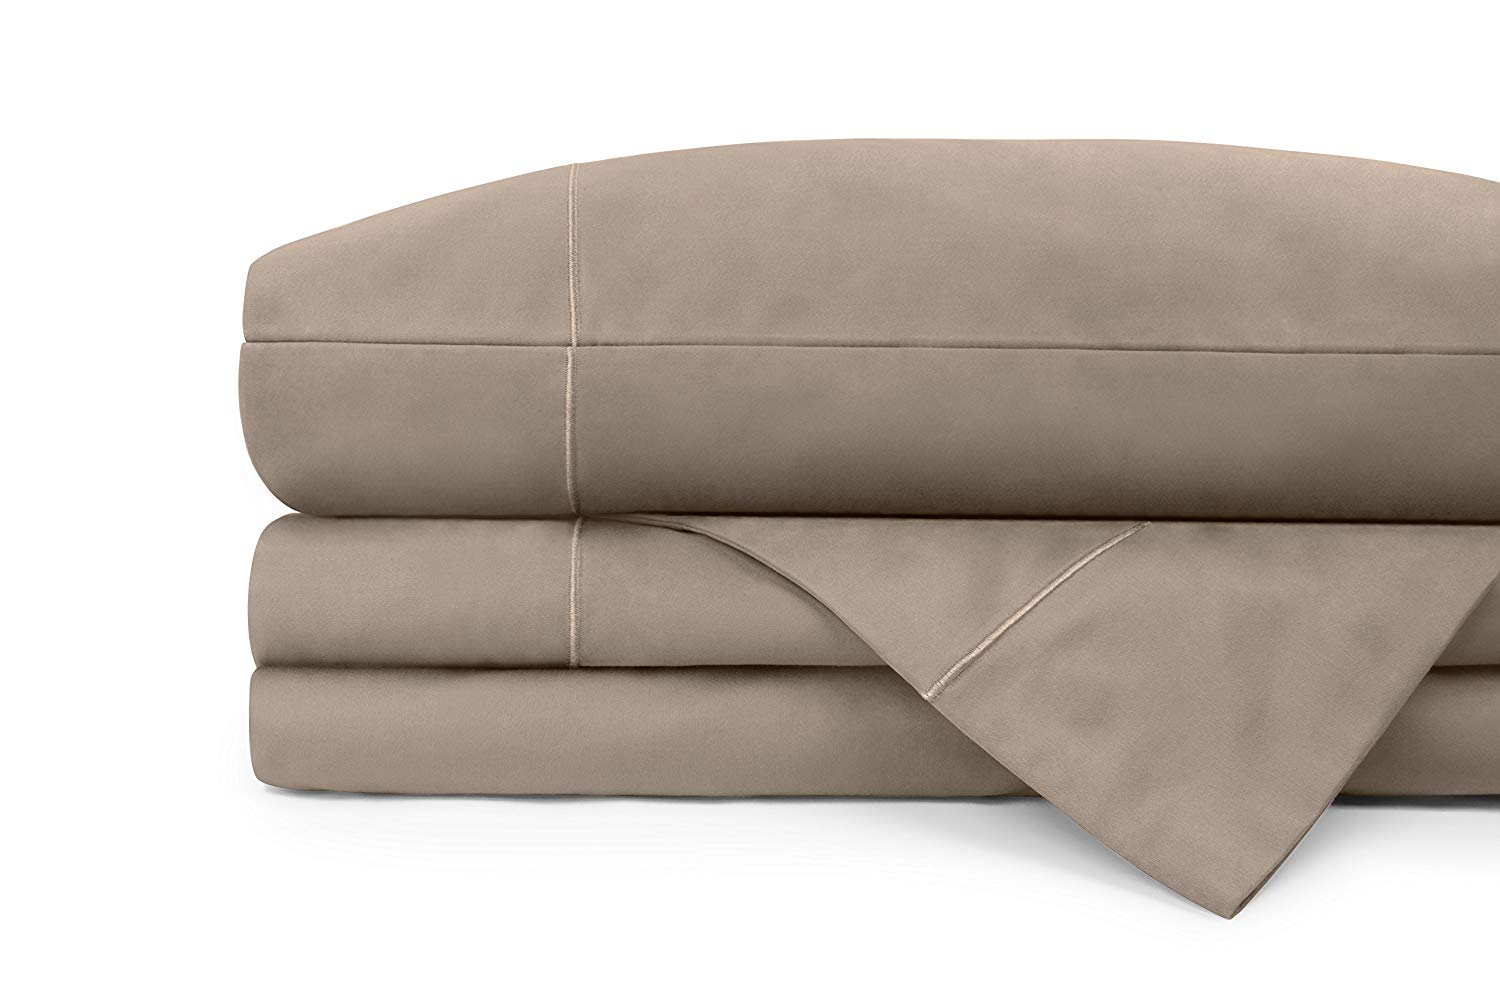 """600 Thread Count 100% Cotton Sheets, 4 Piece Set, Bark Queen Sheets, Fits 18"""" Deep Pockets, Wonderful Sateen Weave, Luxurious Sateen Cotton Sheets and Pillowcases by Upper Club"""